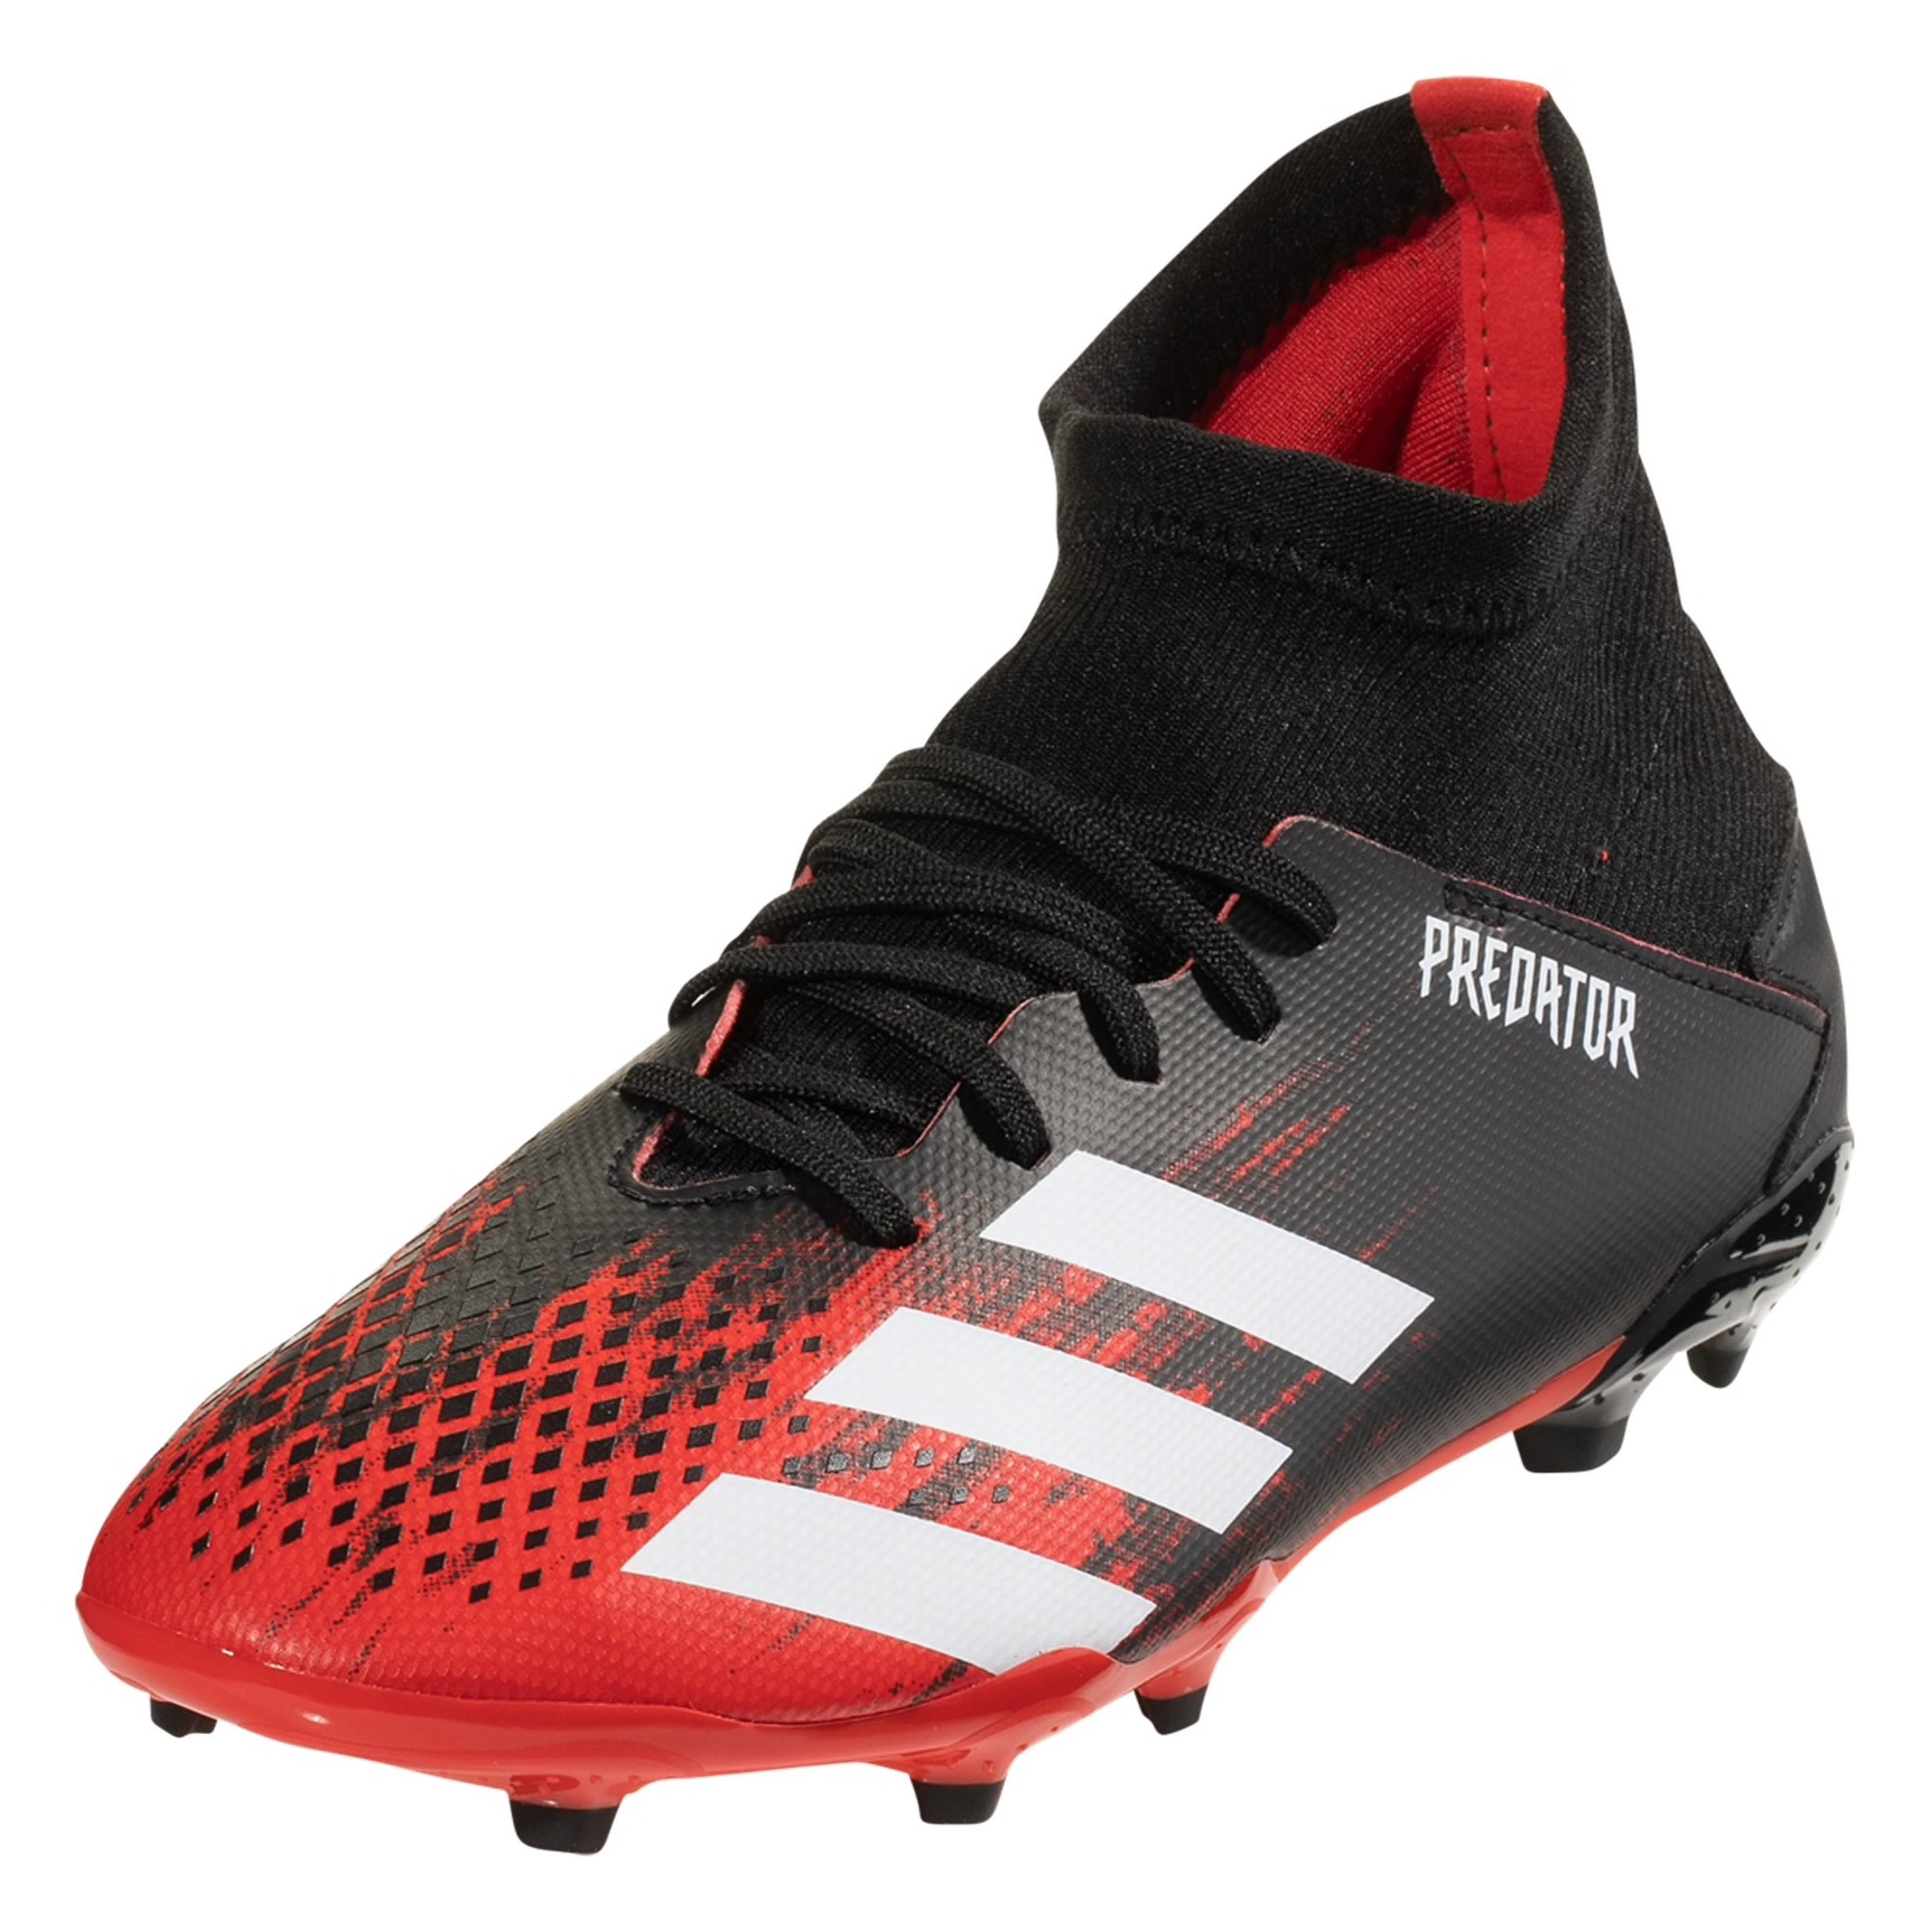 adidas Predator 20.3 FG Junior Soccer Cleat - Red / White / Black